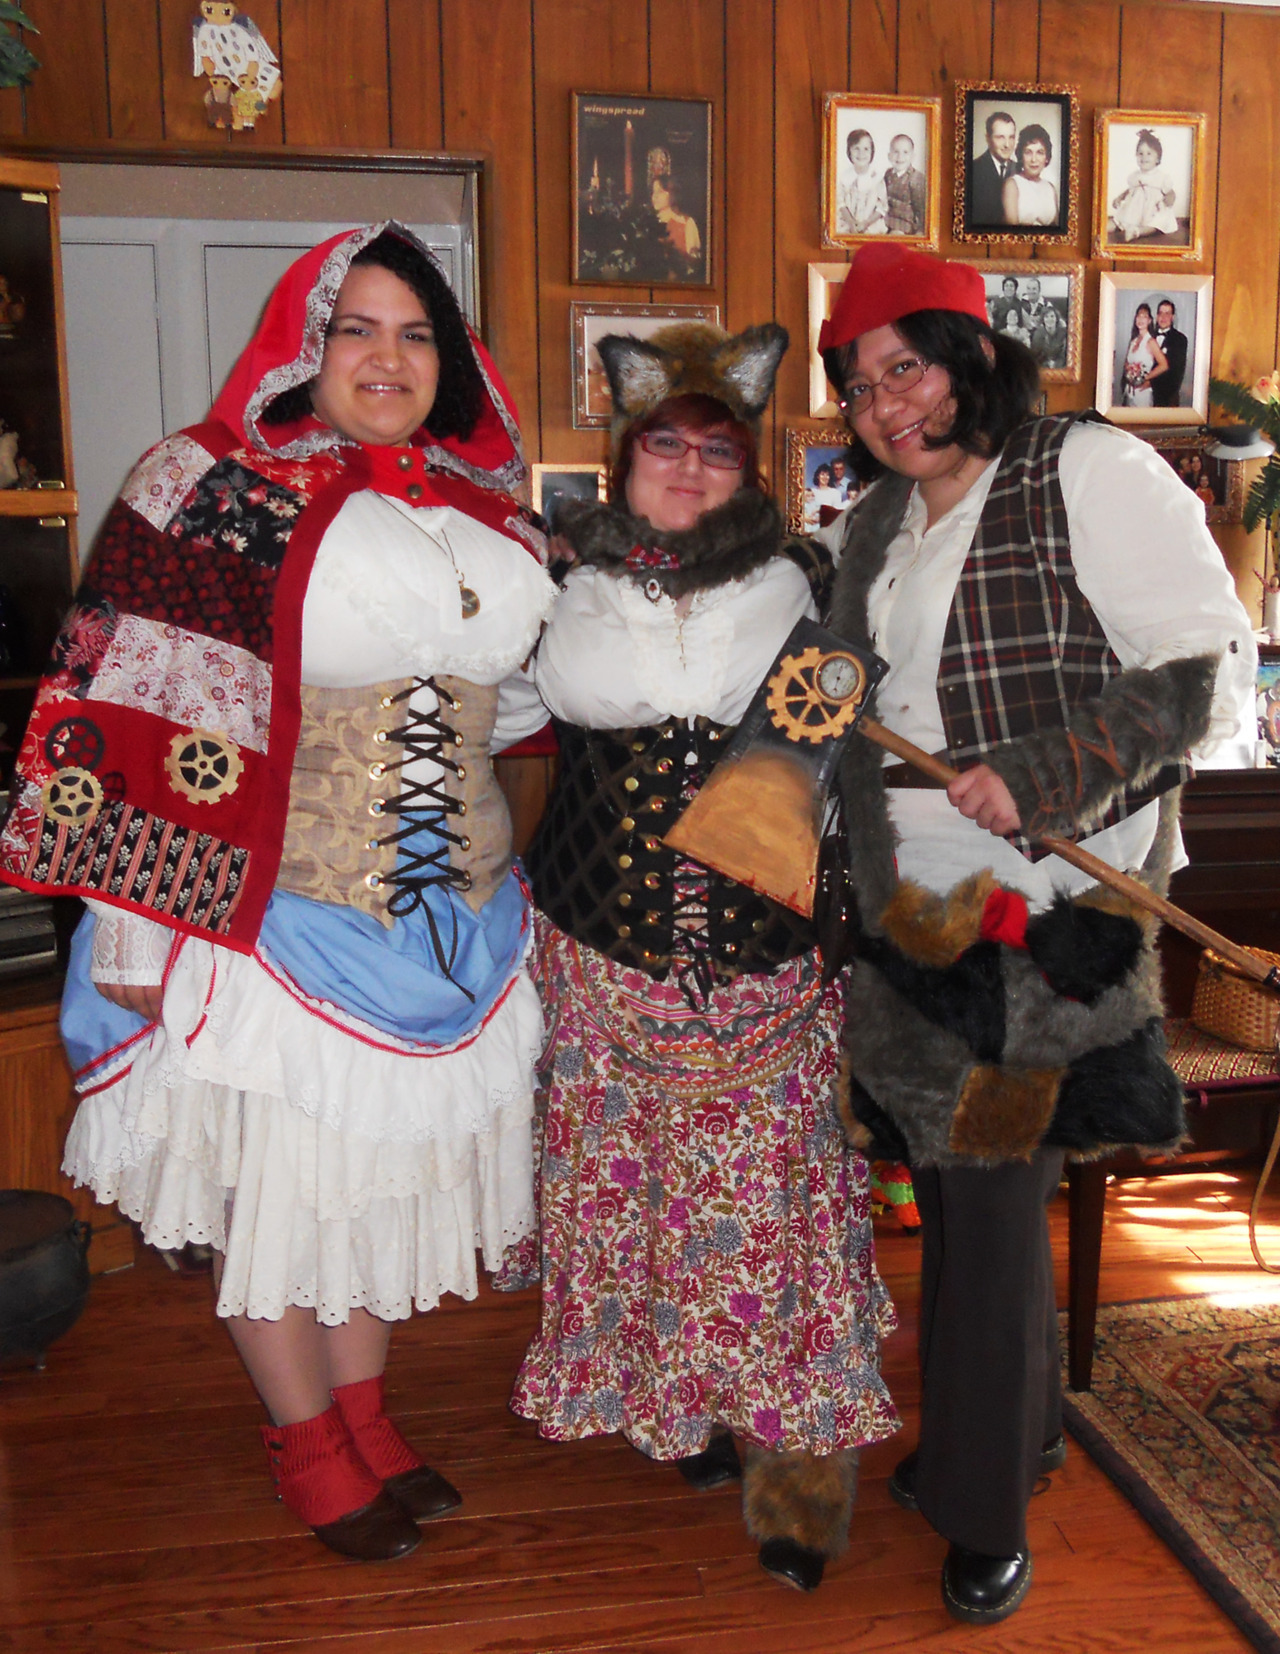 My group of friends and I put together a lightly steampunked Red Riding Hood trio for a convention back in January.  Most of the costumes were handmade, and though you can't see it, I had a tail. Next up for us is a steampunk circus theme and steampunk Disney (I'll be the Maleficent to the earlier Ariel post)